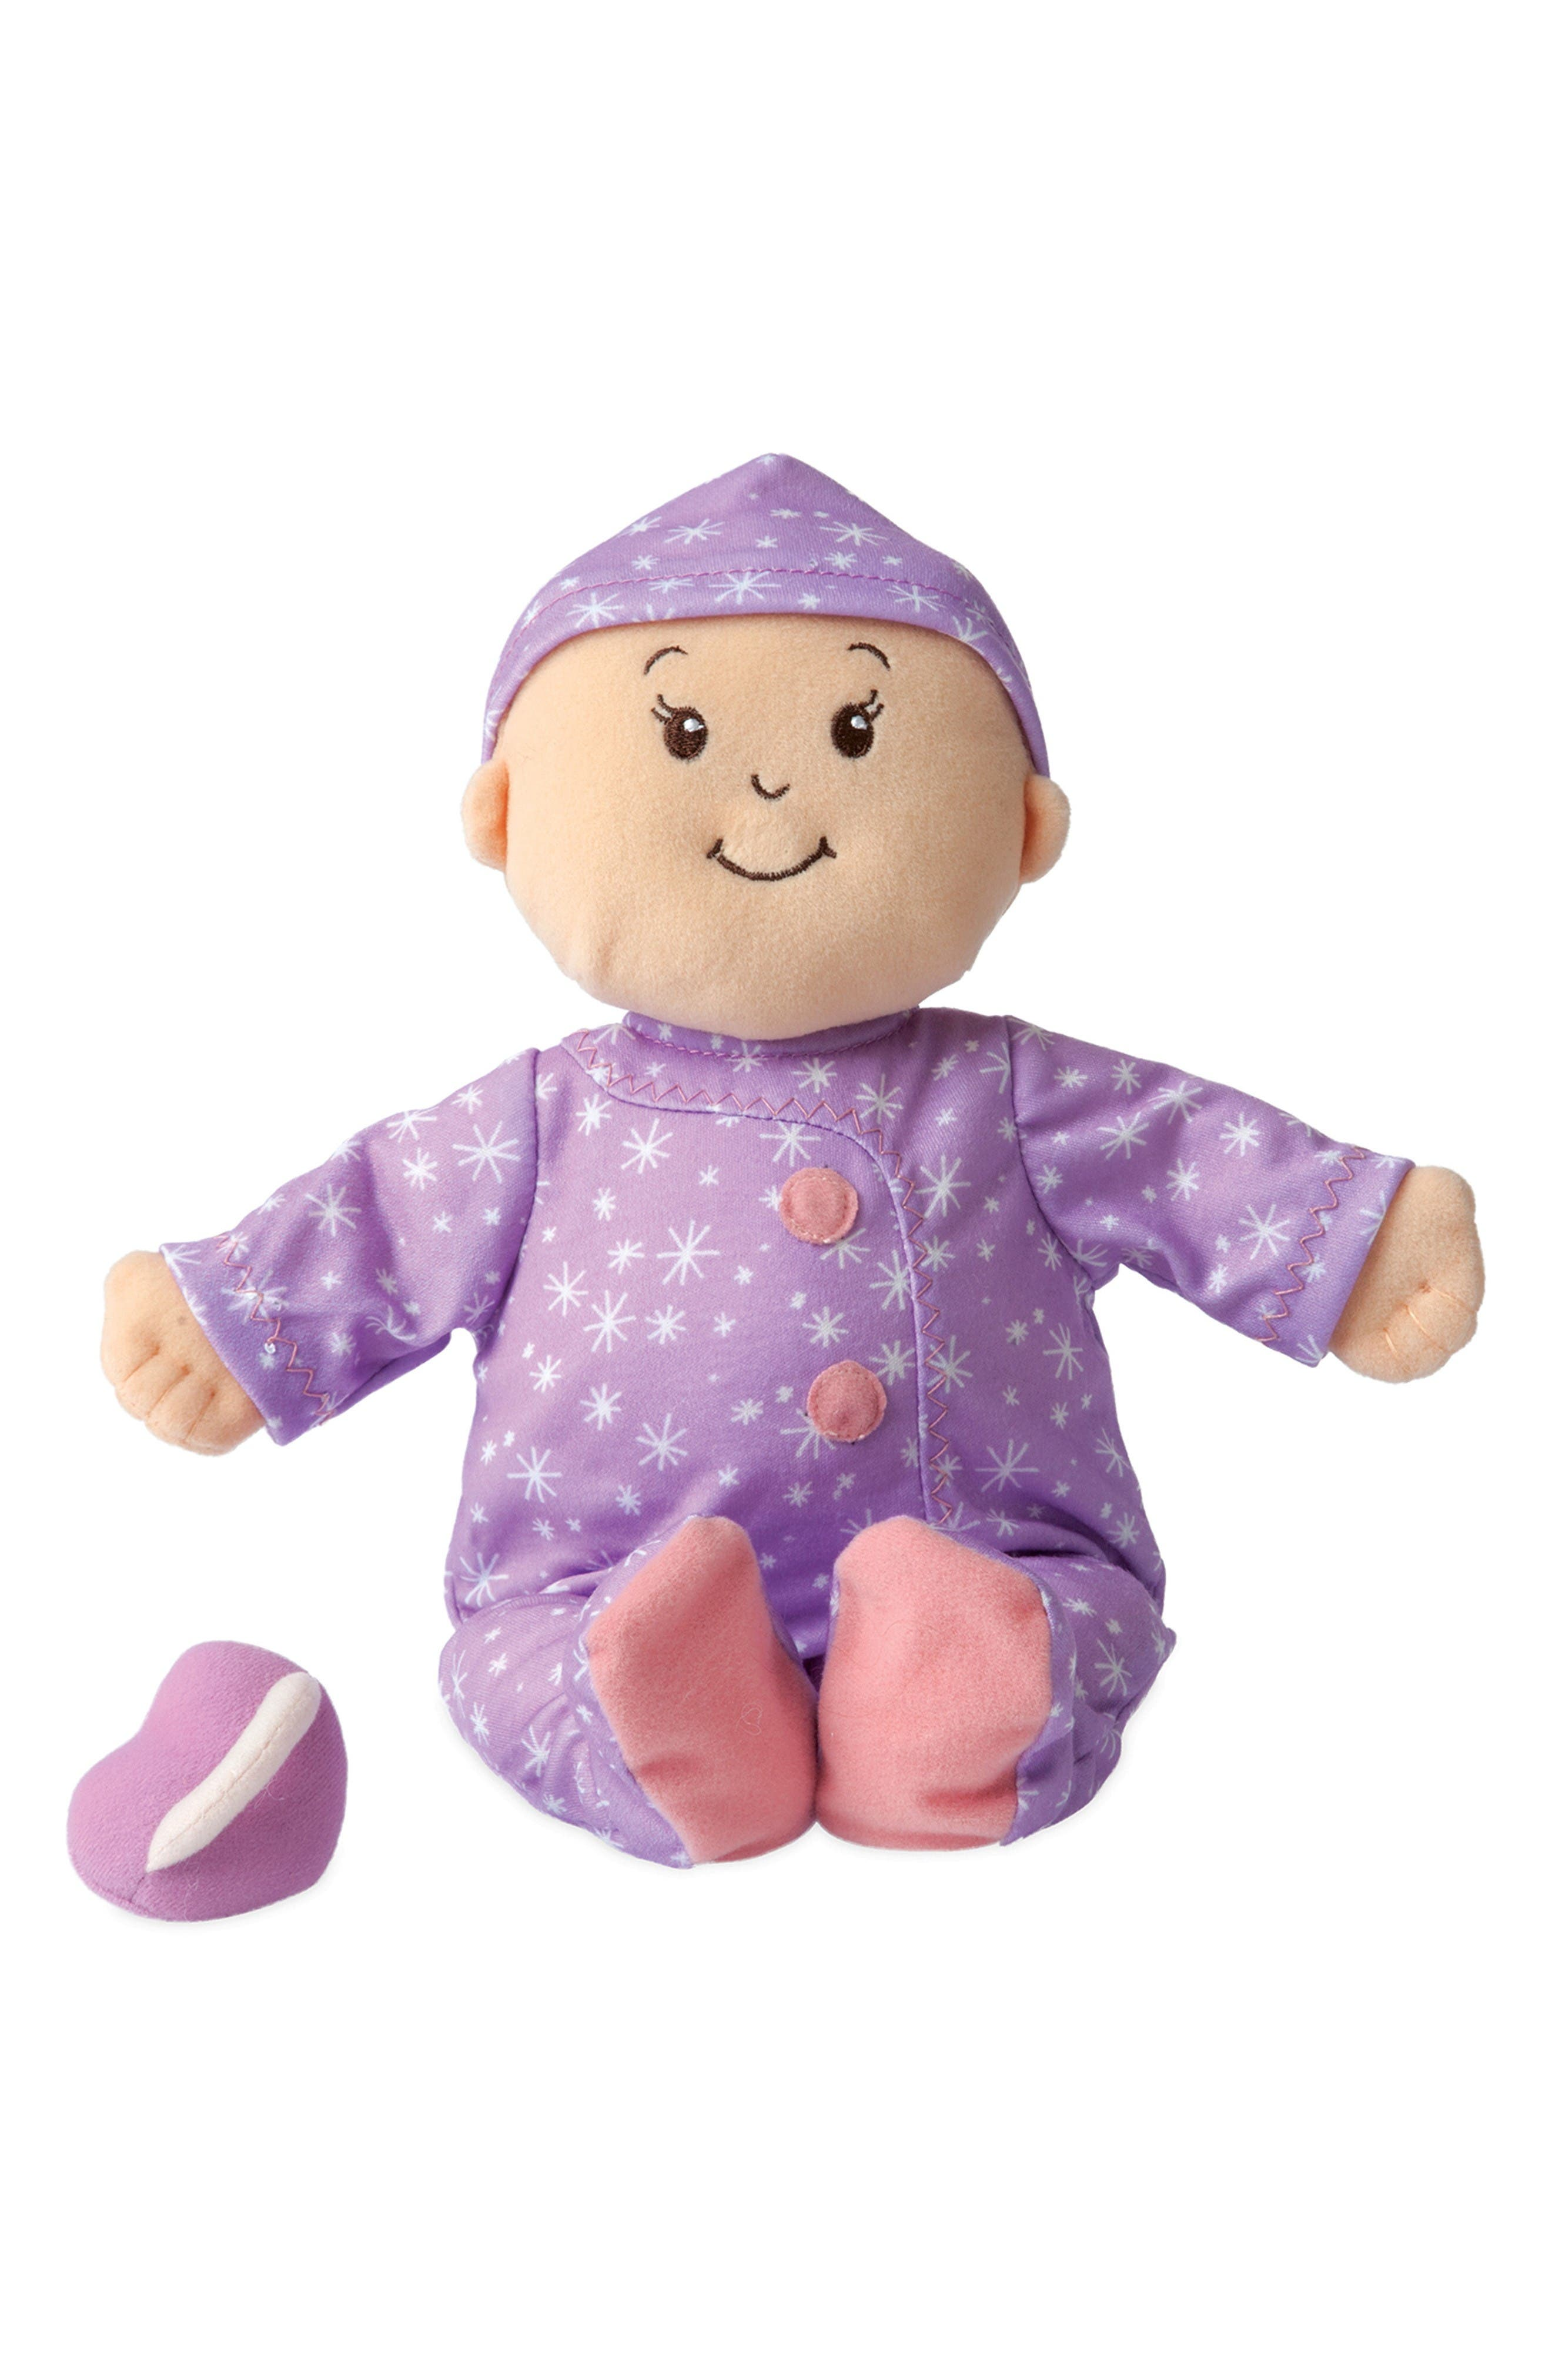 Baby Stella - Sweet Dreams Doll Toy,                         Main,                         color, Purple